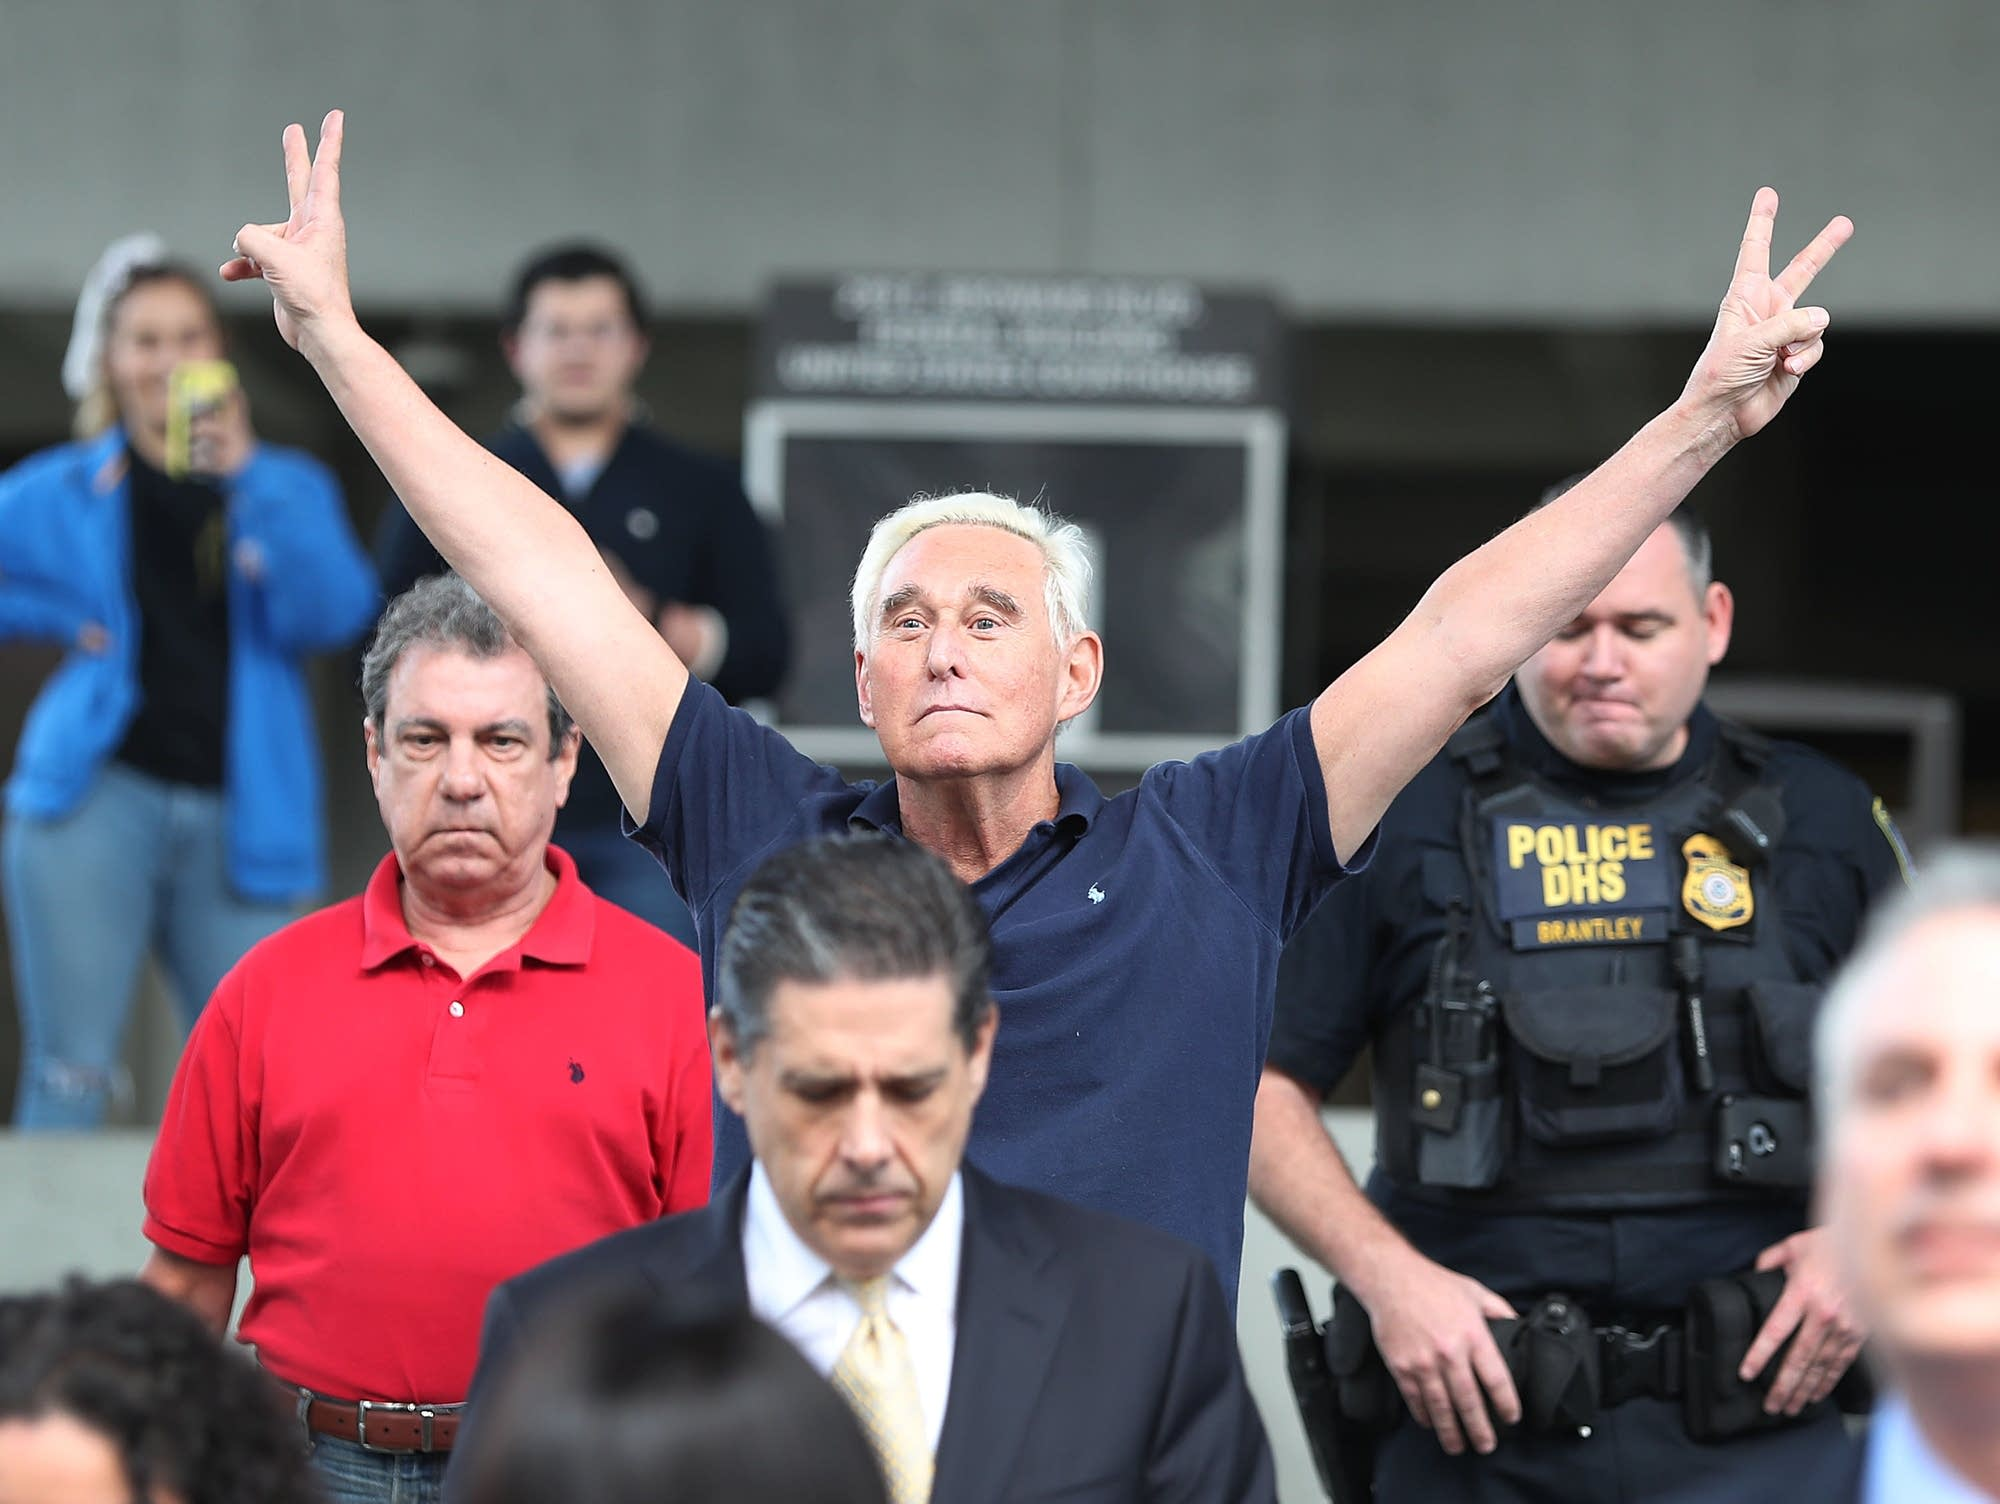 Roger Stone, a confidant to President Trump, exits the federal courthouse